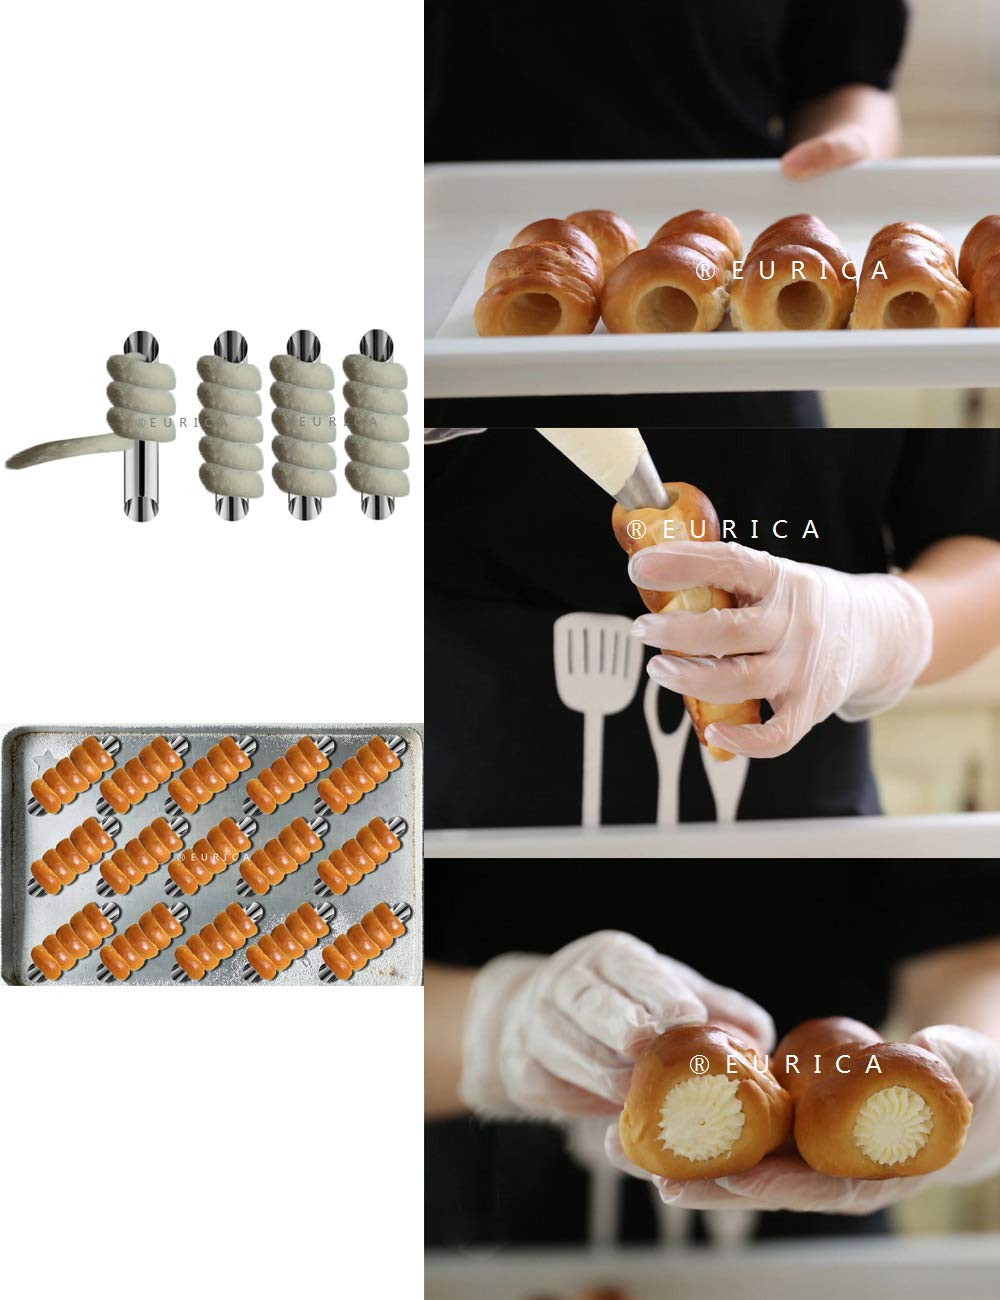 Hemoton 6pcs Cannoli Tubes Stainless Steel Croissant Maker Cannoli Forms Bakeware Pastry Molds for Shell Cream Rolls